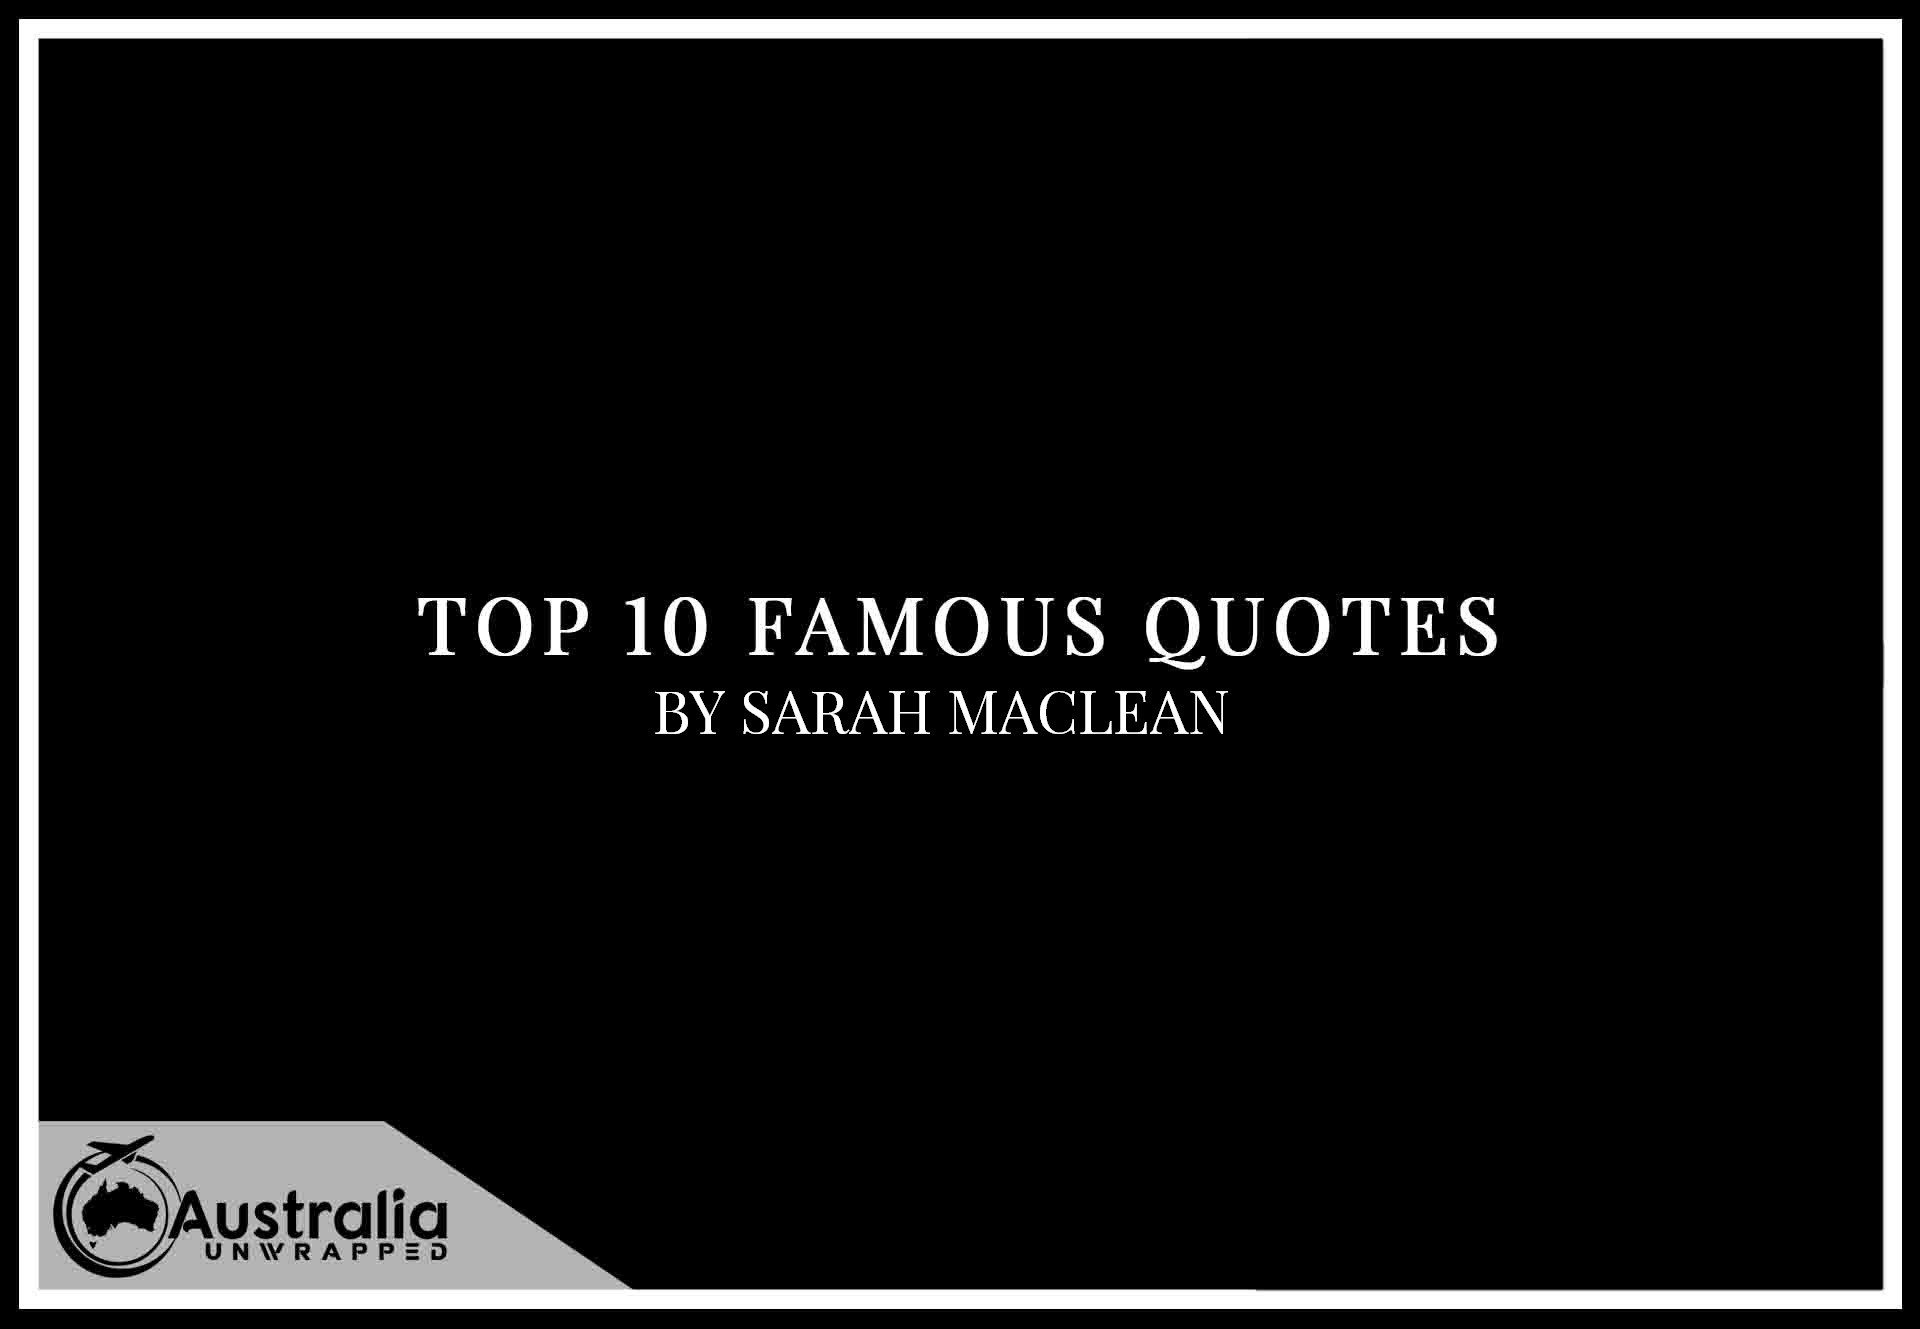 Top 10 Famous Quotes by Author Sarah MacLean